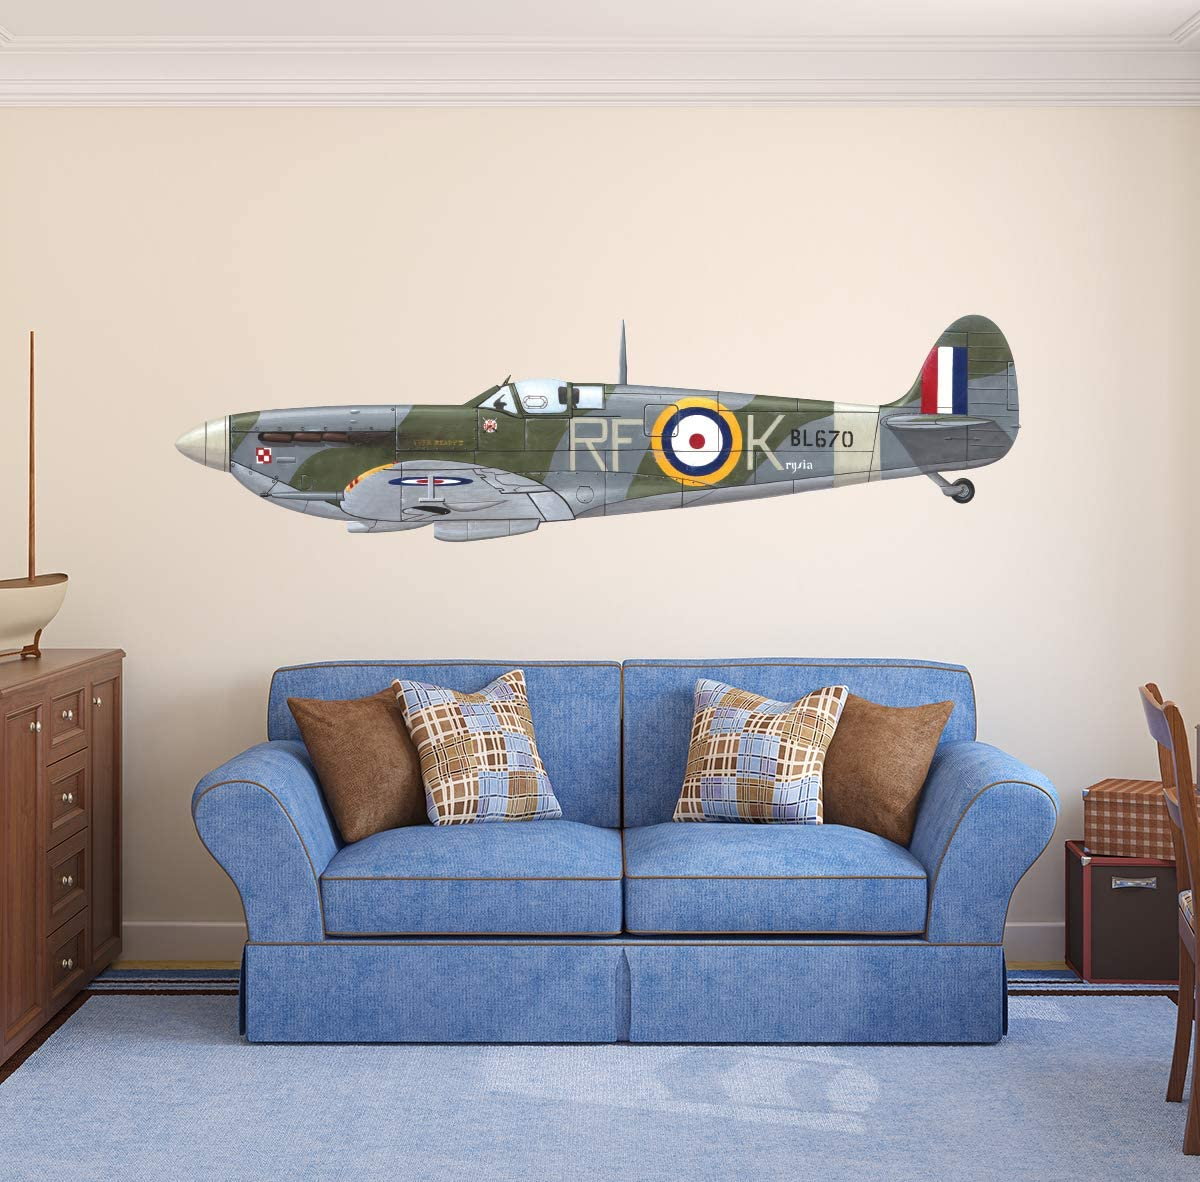 WWII Aircraft Wall Decal Military Airplane Wall Art Graphic Kids Room Home Bedroom Wall Decor Removable Vinyl Wall Stickers ND63 (90